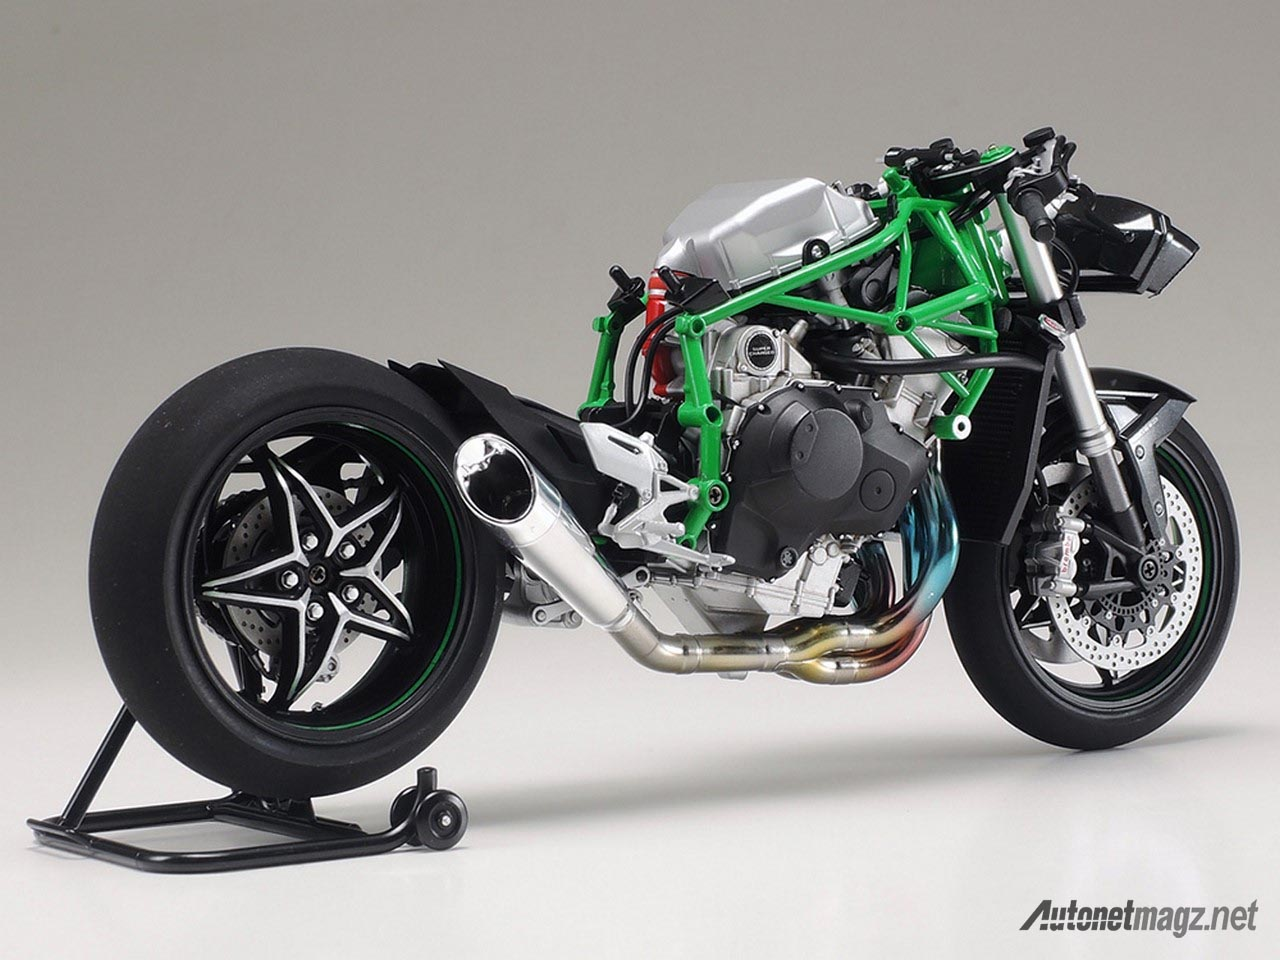 Hot Stuff, kawasaki-ninja-h2r-model-kit-tamiya-parts: Tamiya Rilis Model Kit Kawasaki Ninja H2R Skala 12, Sikat!